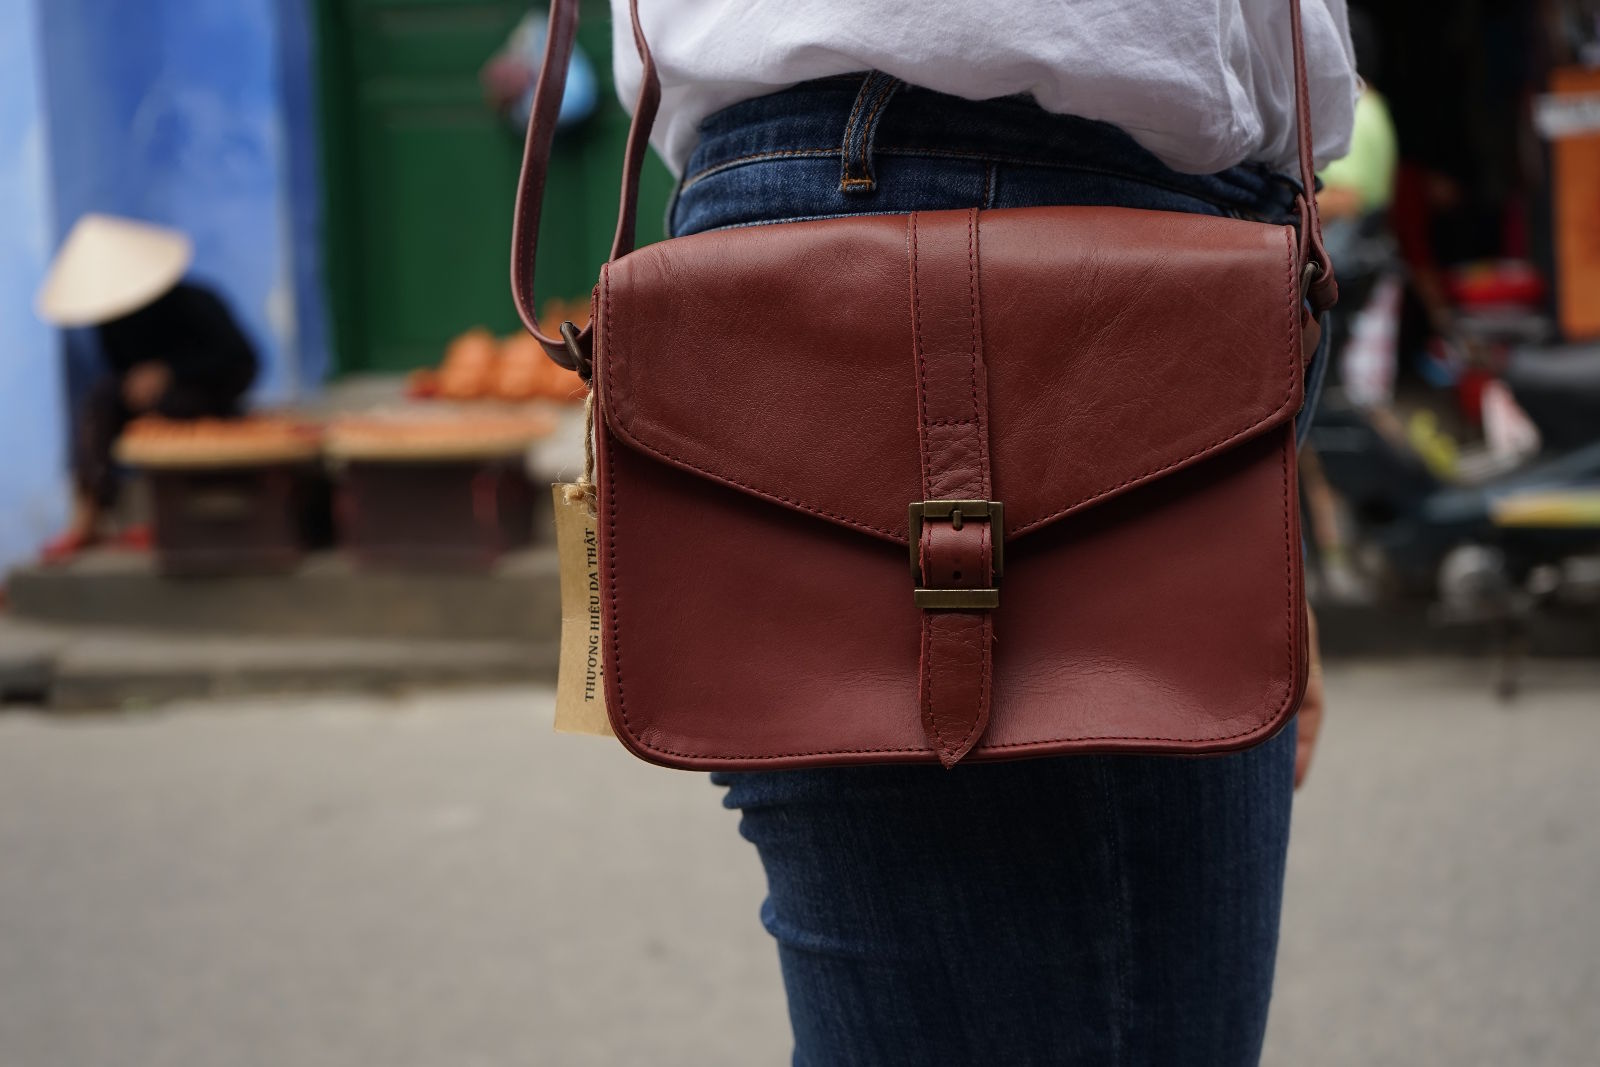 Hoi An Real Leather - Da Bao Real Leather: Timeless brown leather handbag with buckle. Made of 100% buffalo leather.